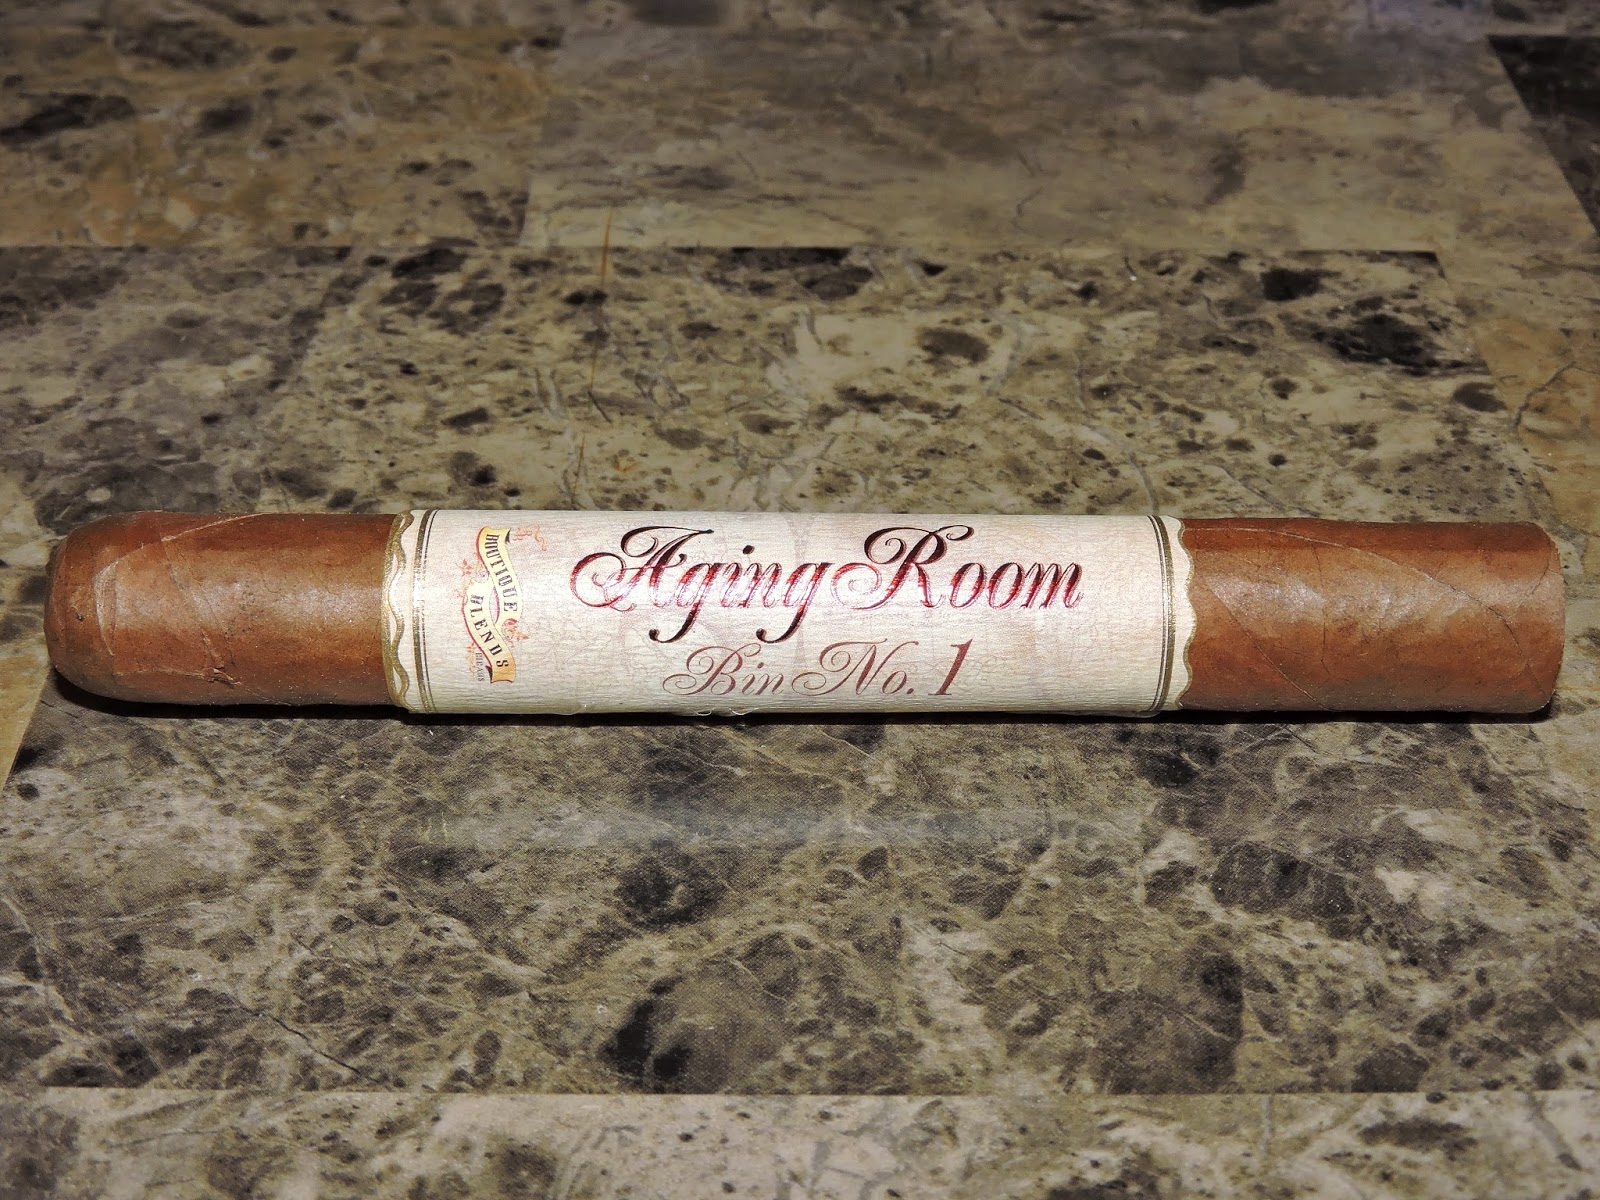 Aged Selects 2014 Cigar of the Year Countdown: #16 Aging Room Bin No. 1 by Boutique Blends Cigars